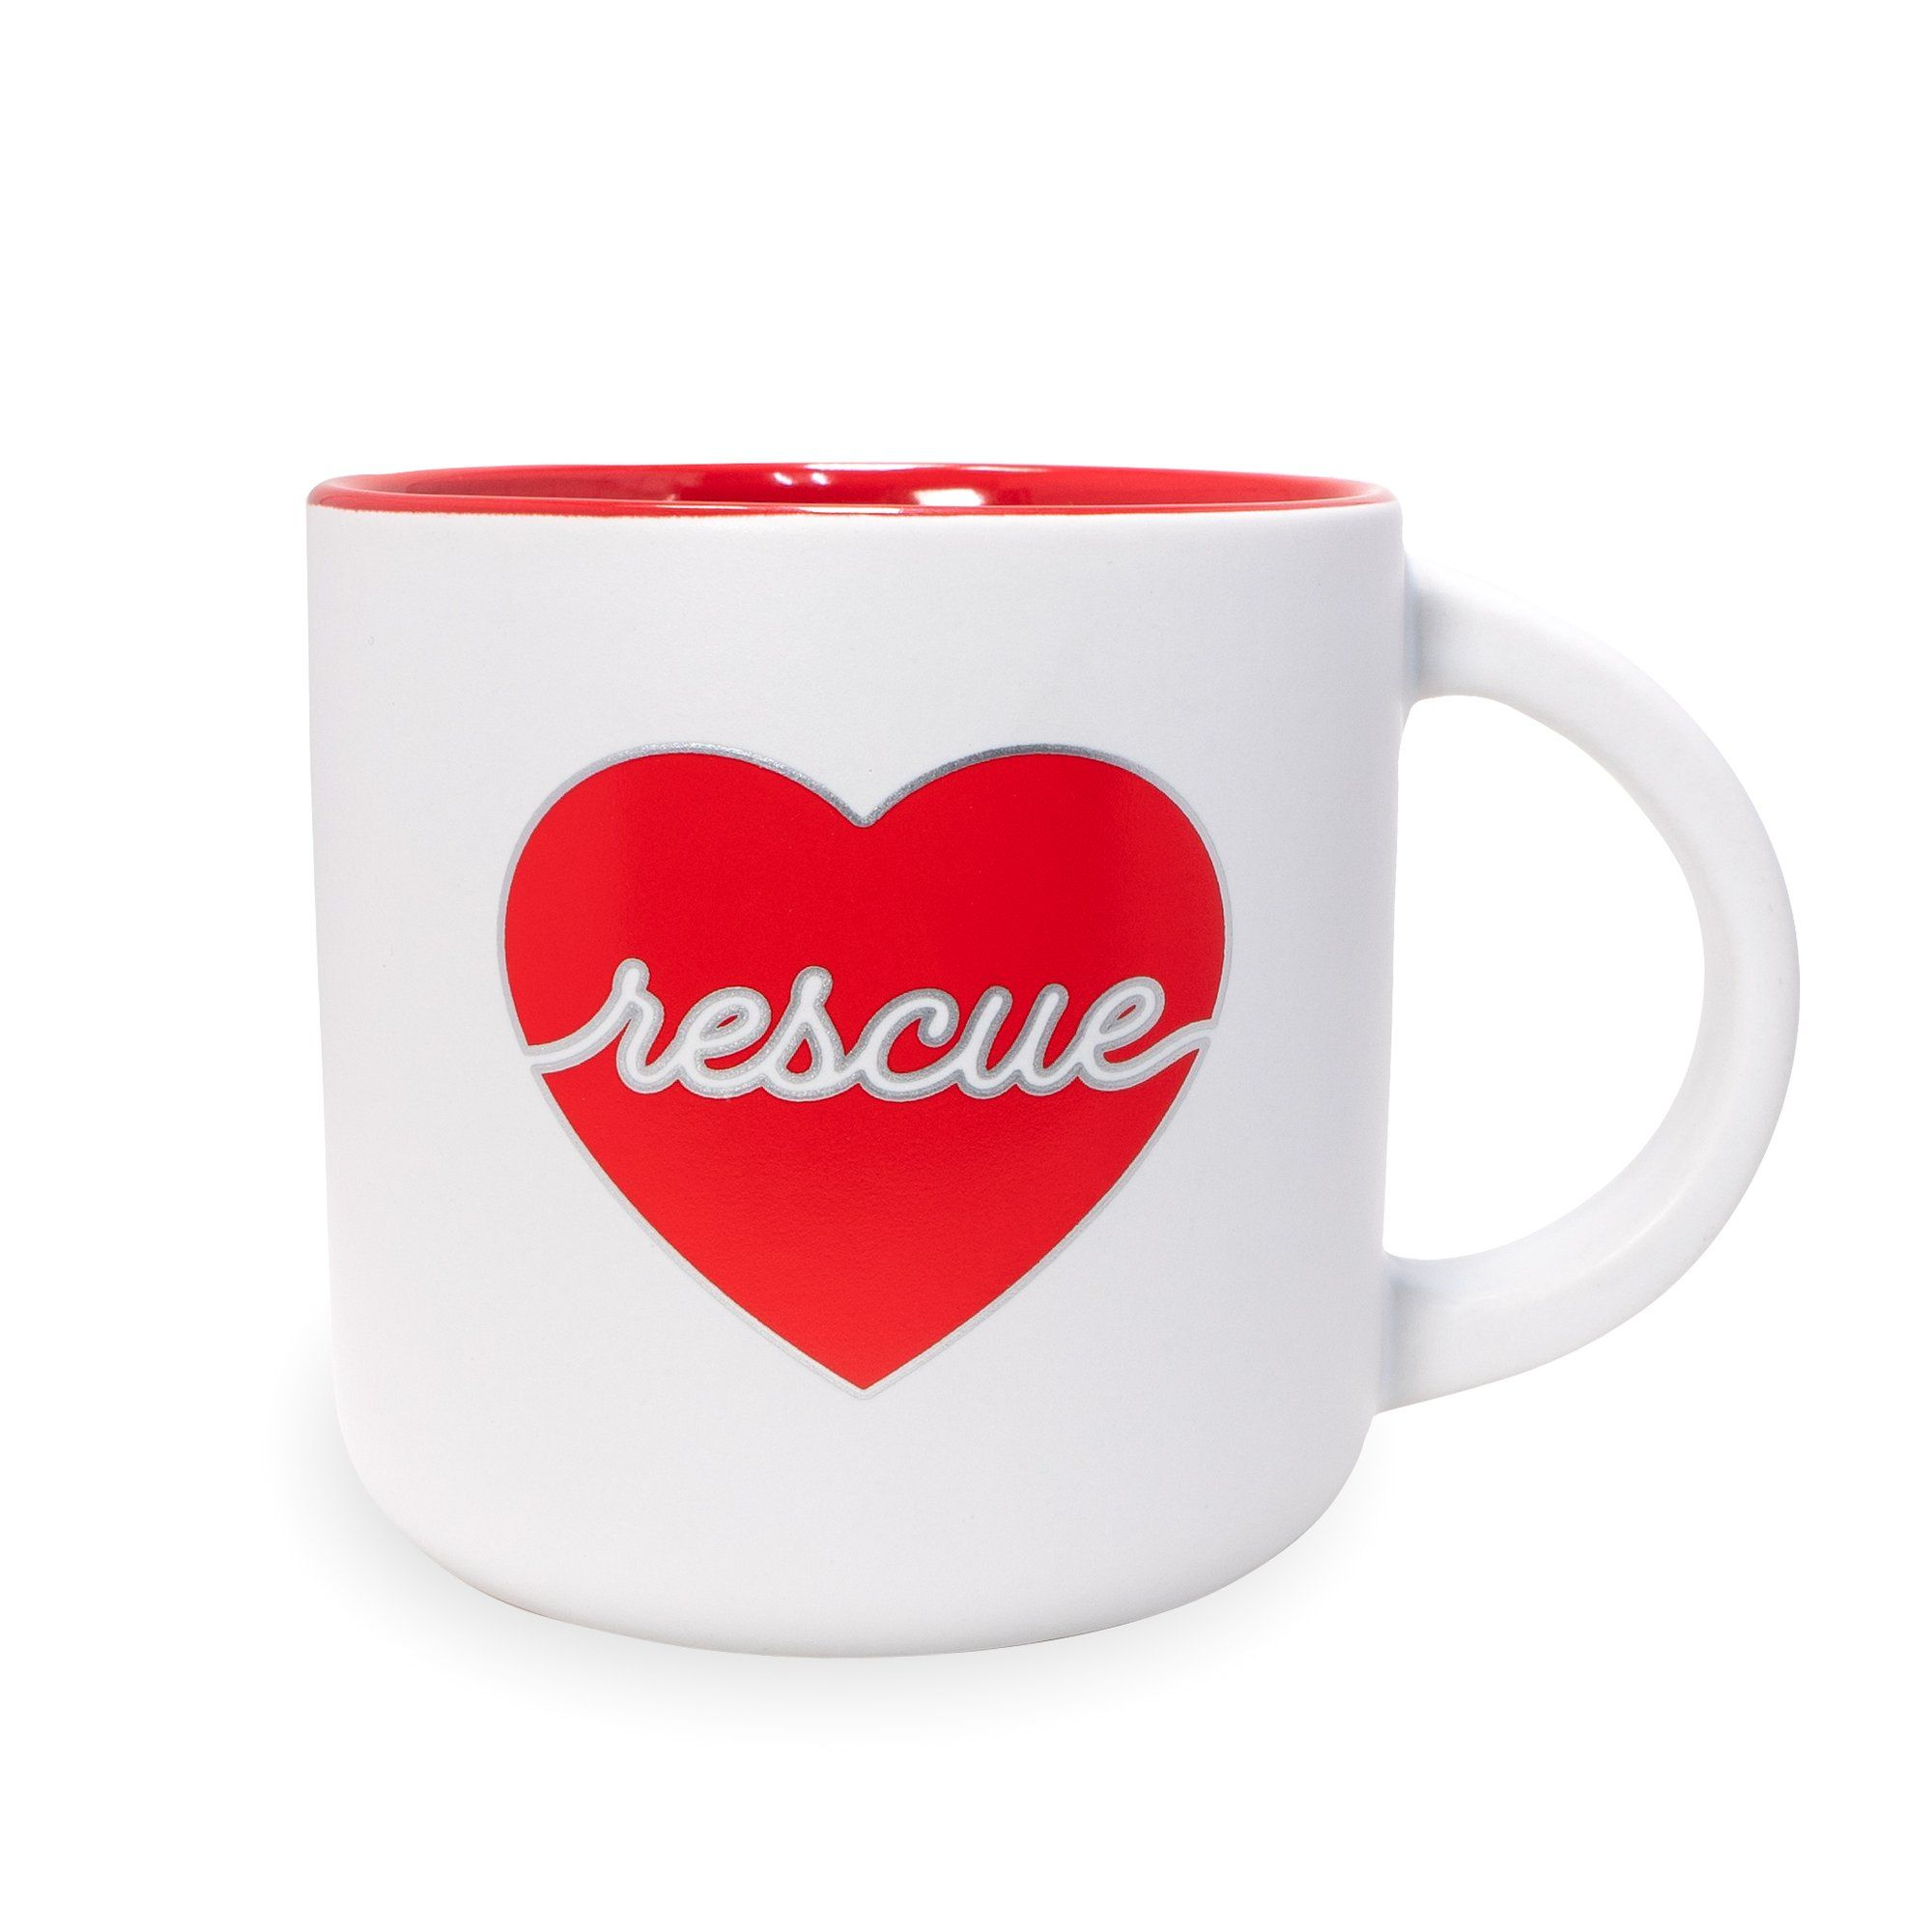 Heart for Rescue Mug Mugs, Perfect date, Red design